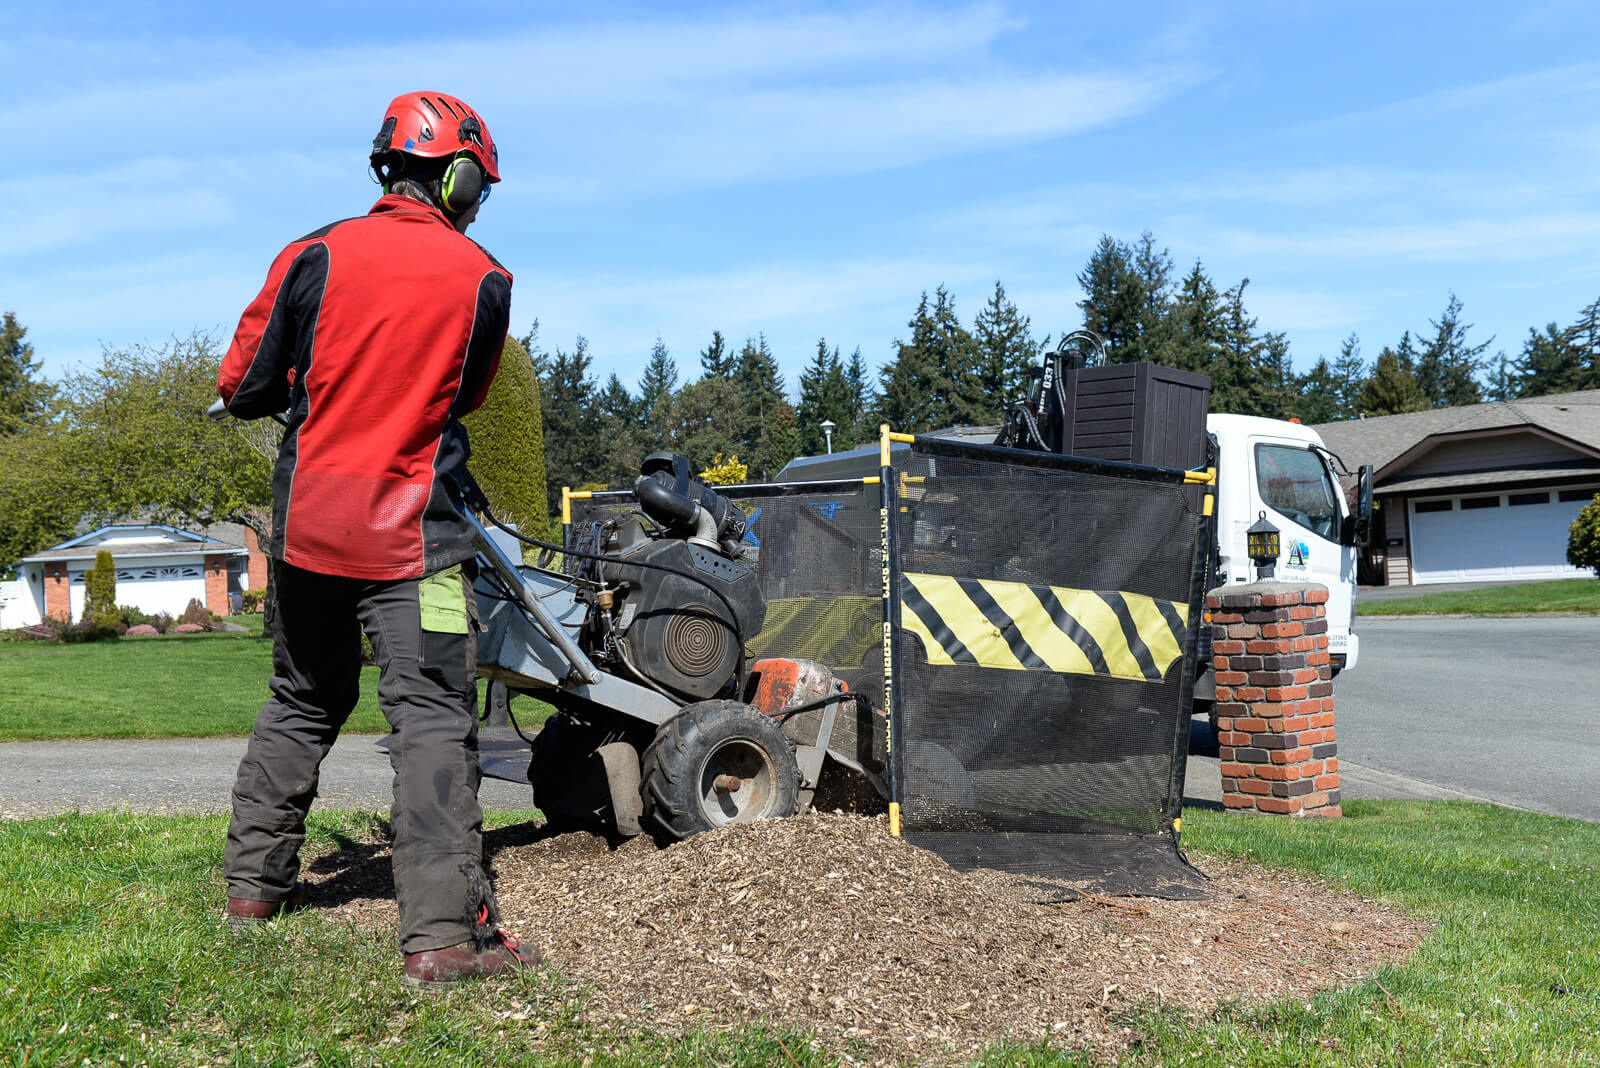 Advantage Tree Care in Victoria BC, removes a tree stump with a stump grinder